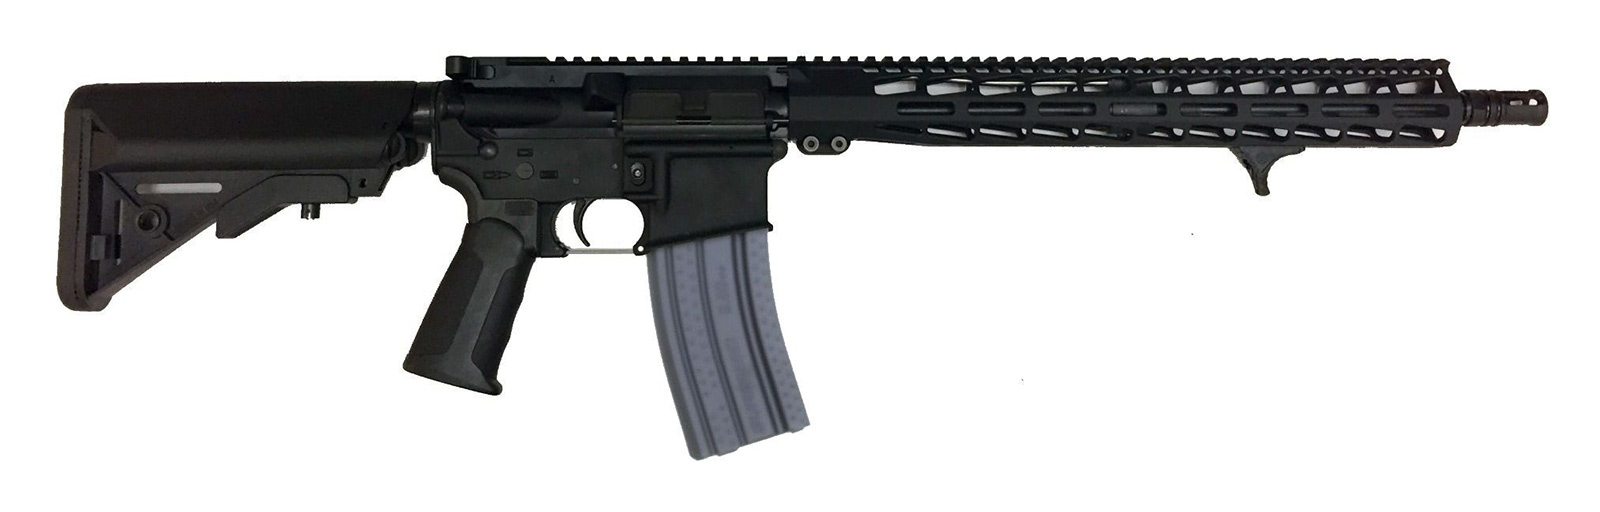 cbc-ps2-forged-aluminum-ar-pistol-5-56-nato-16″-barrel-15″-rail-xtech-grip-sopmod